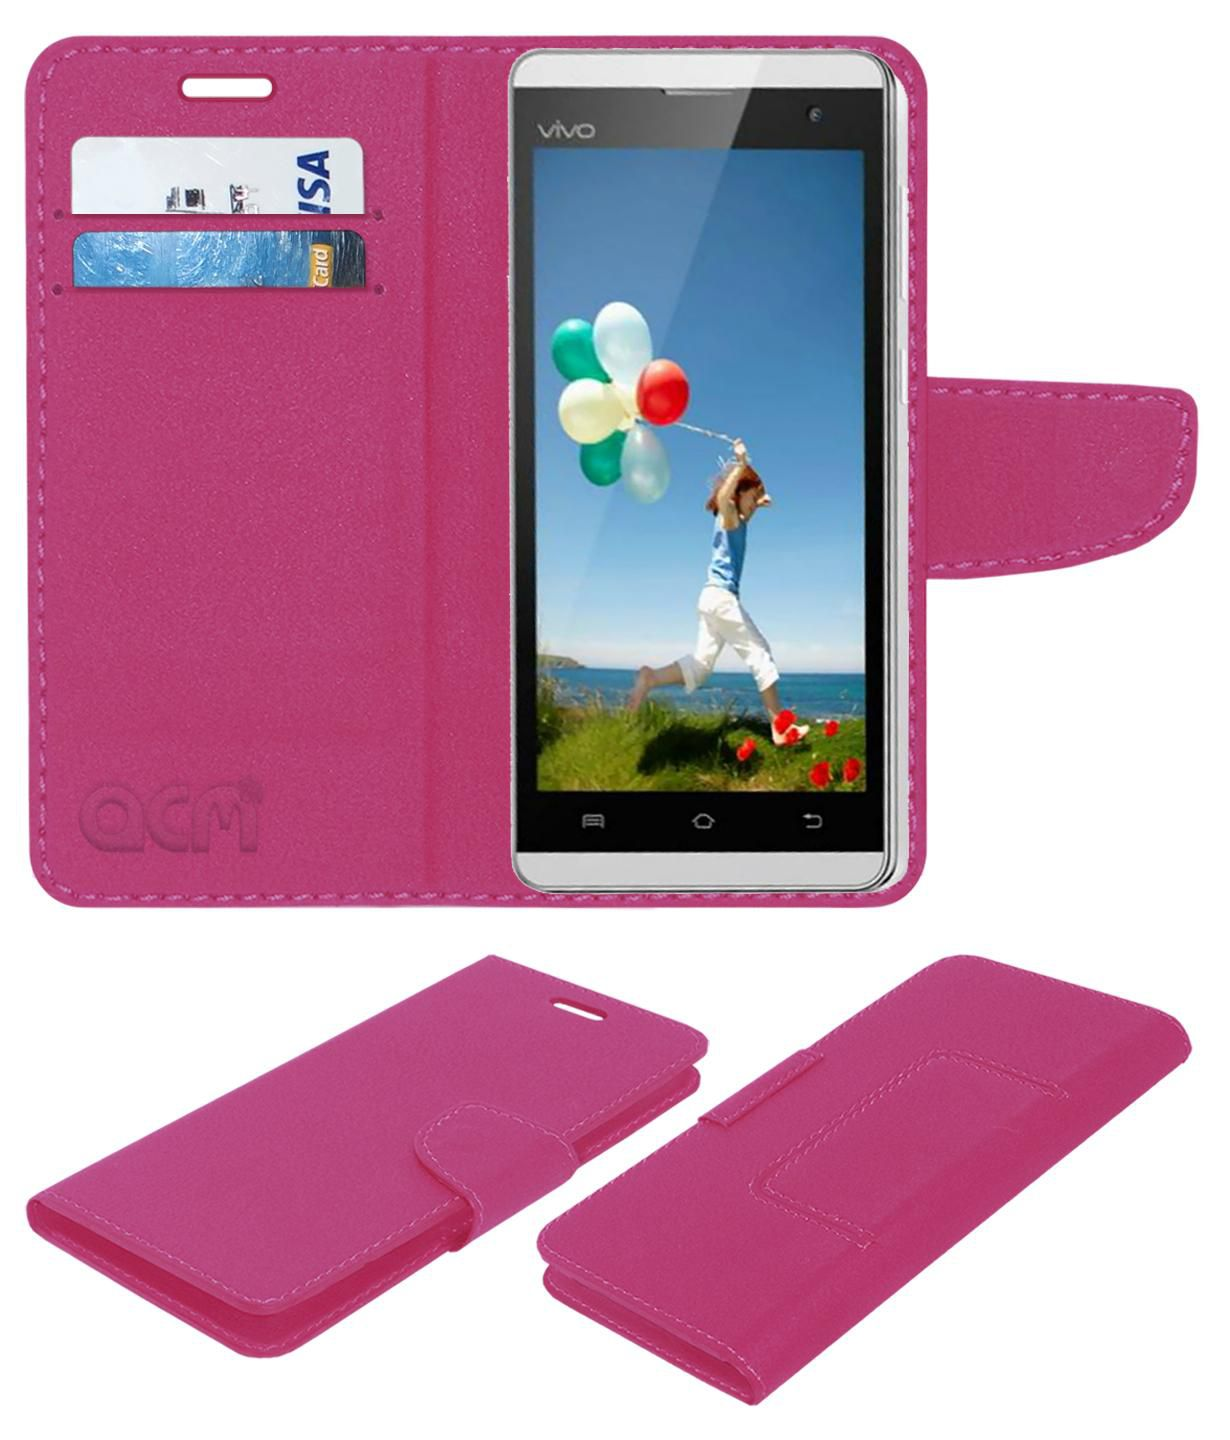 Vivo Y28 Flip Cover by ACM - Pink